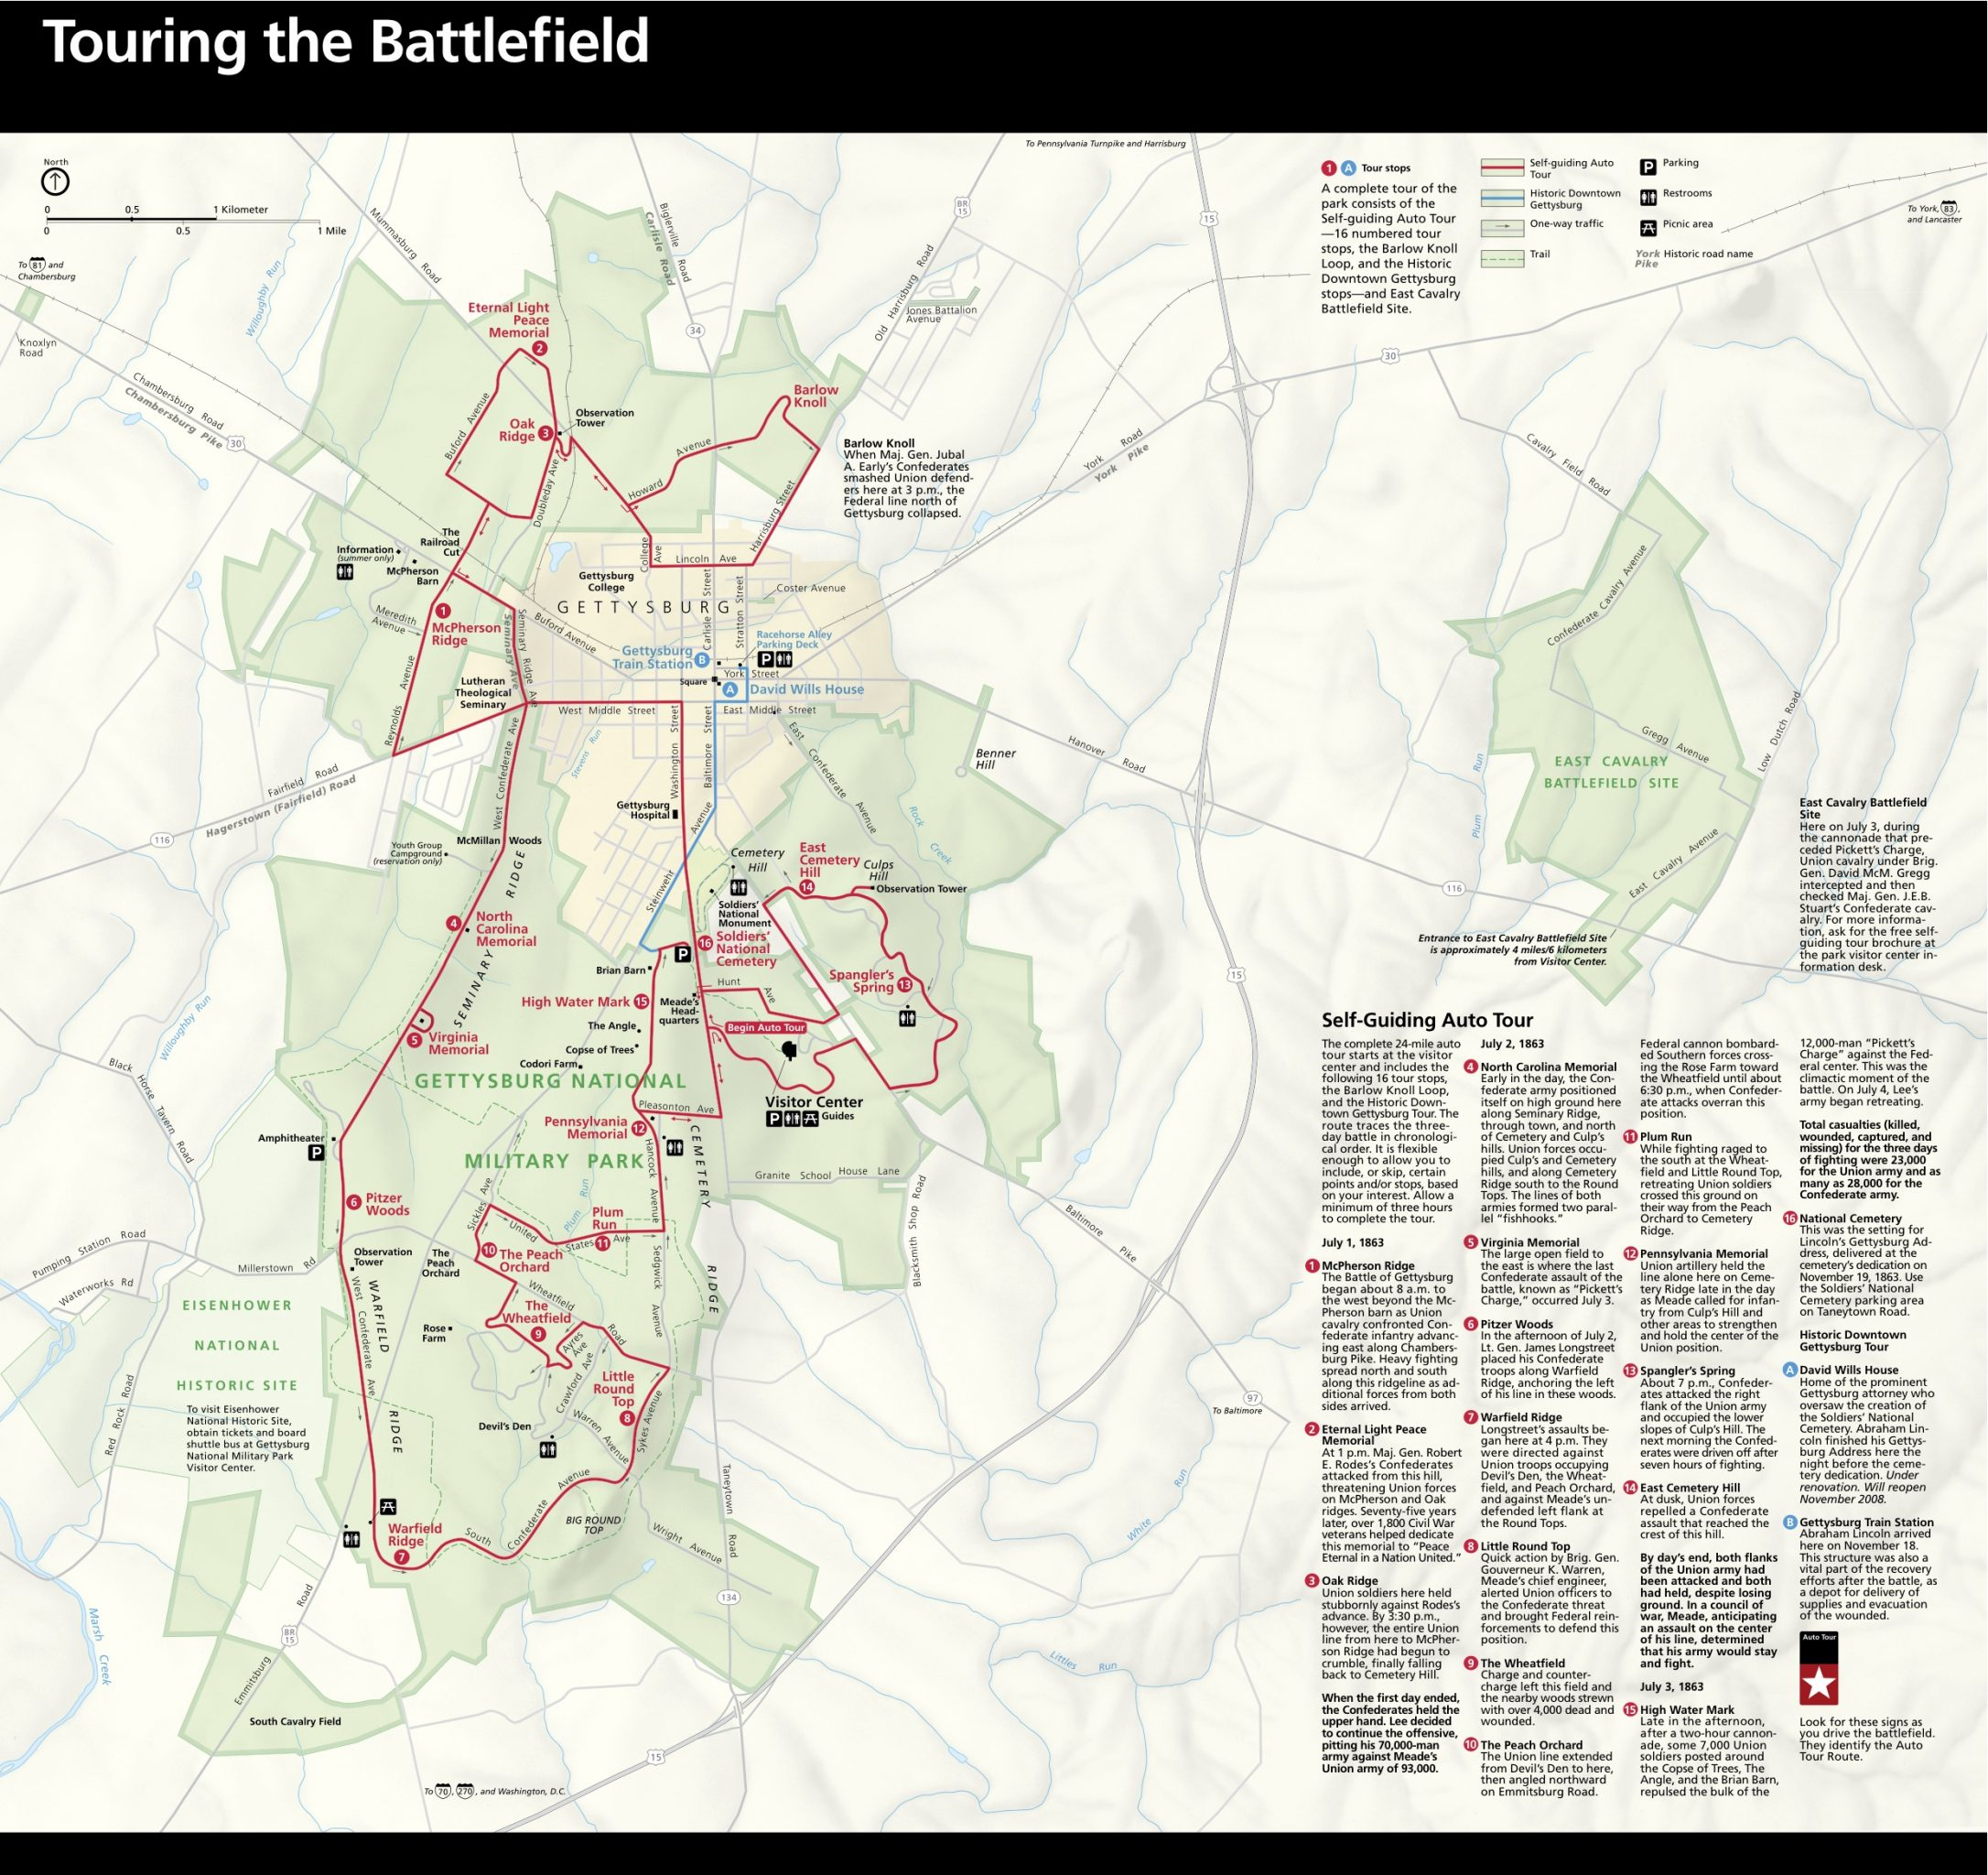 Map of Gettysburg Self-Guided Auto Tour